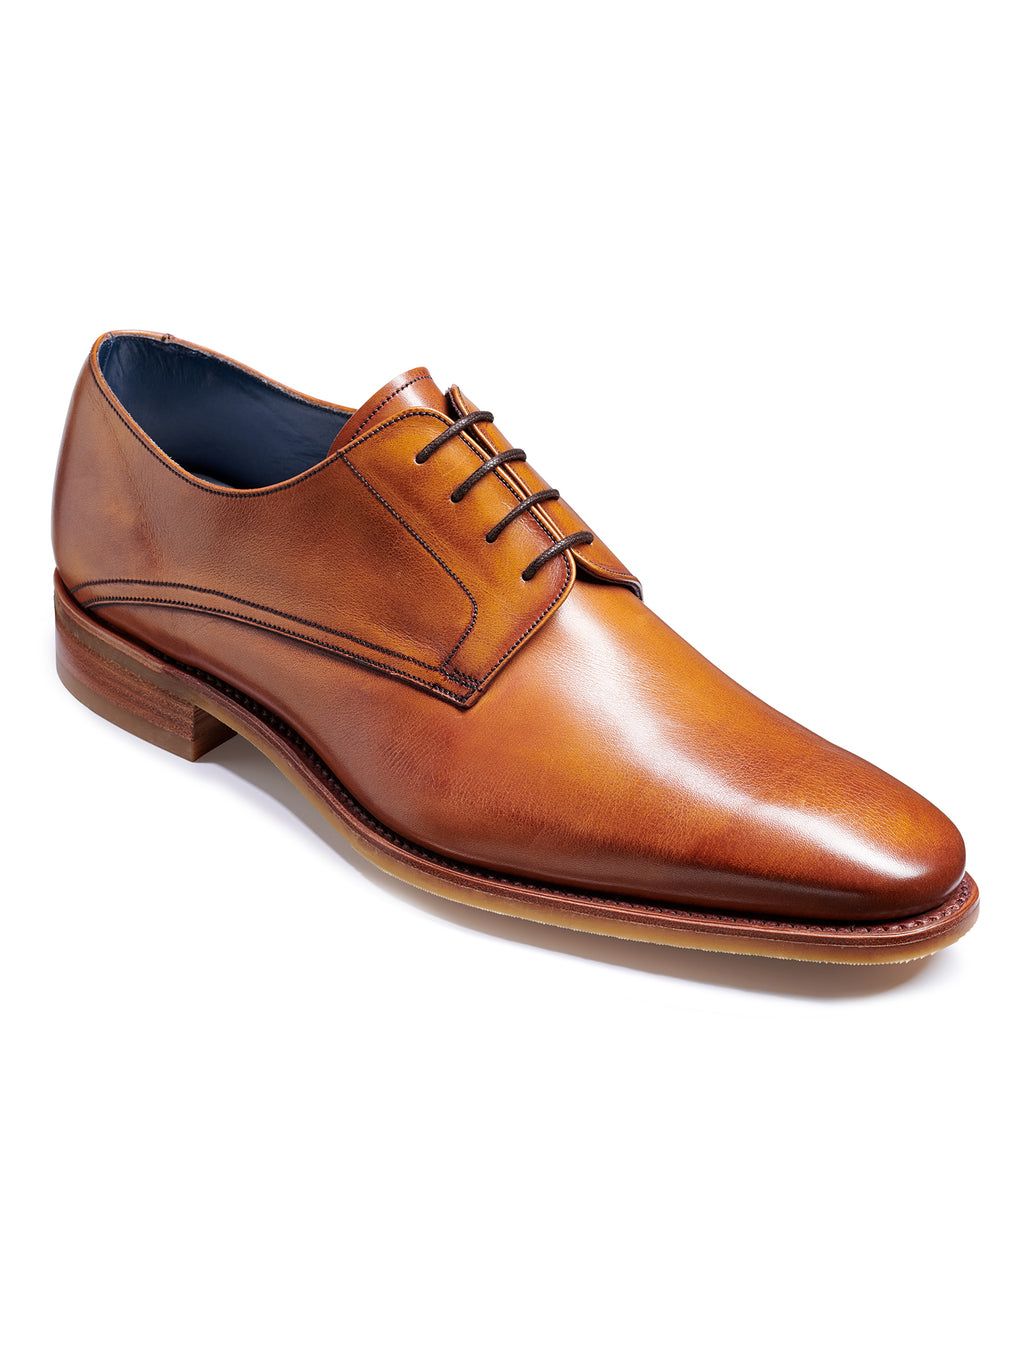 barker shoes max rosewood calf